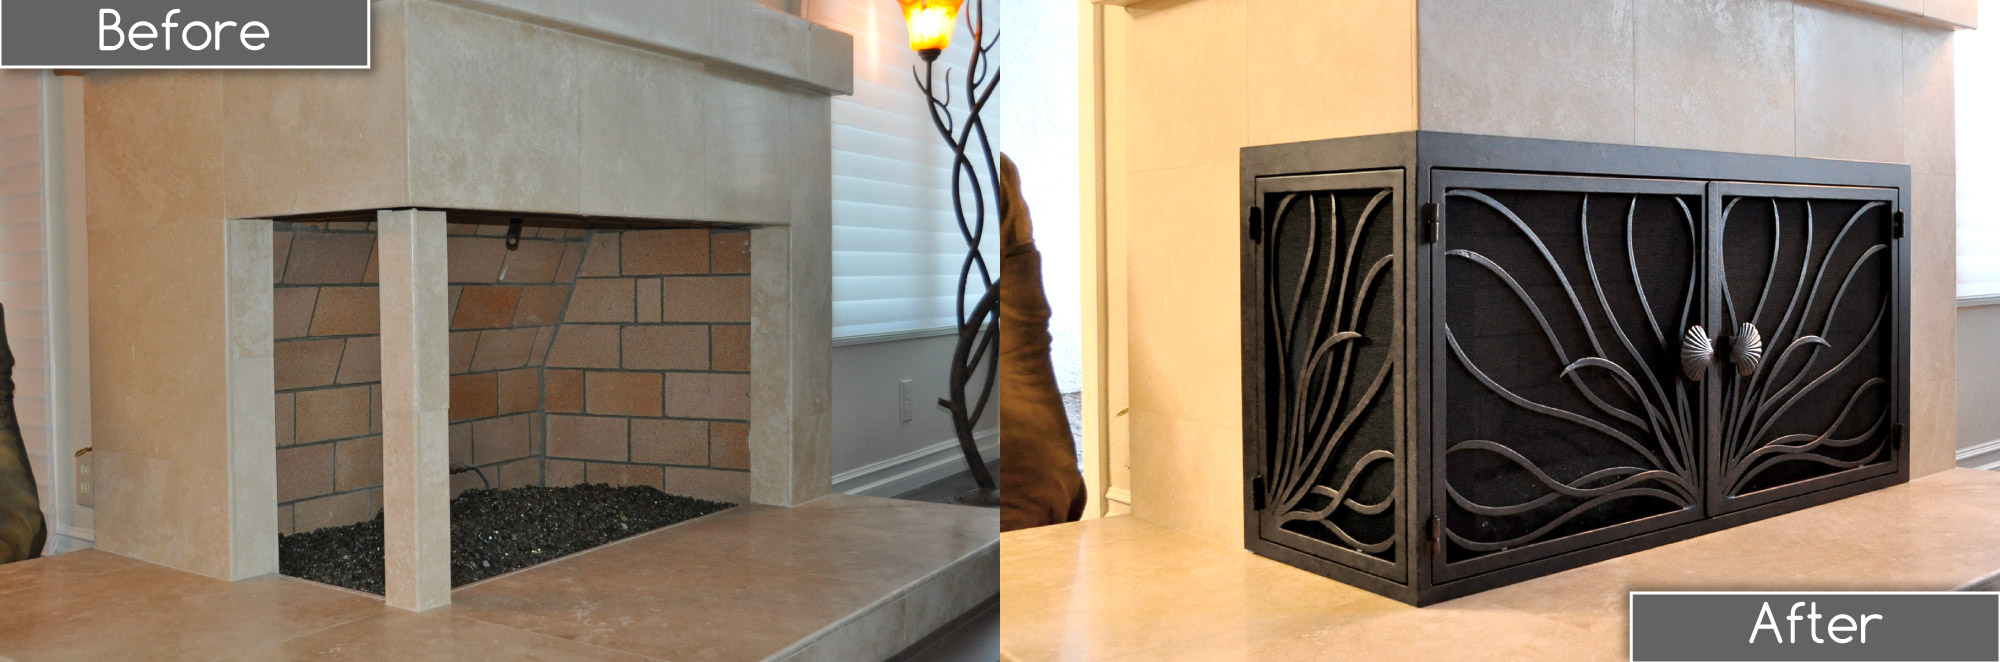 Coral 15 L-Shape Fireplace Door Before and After